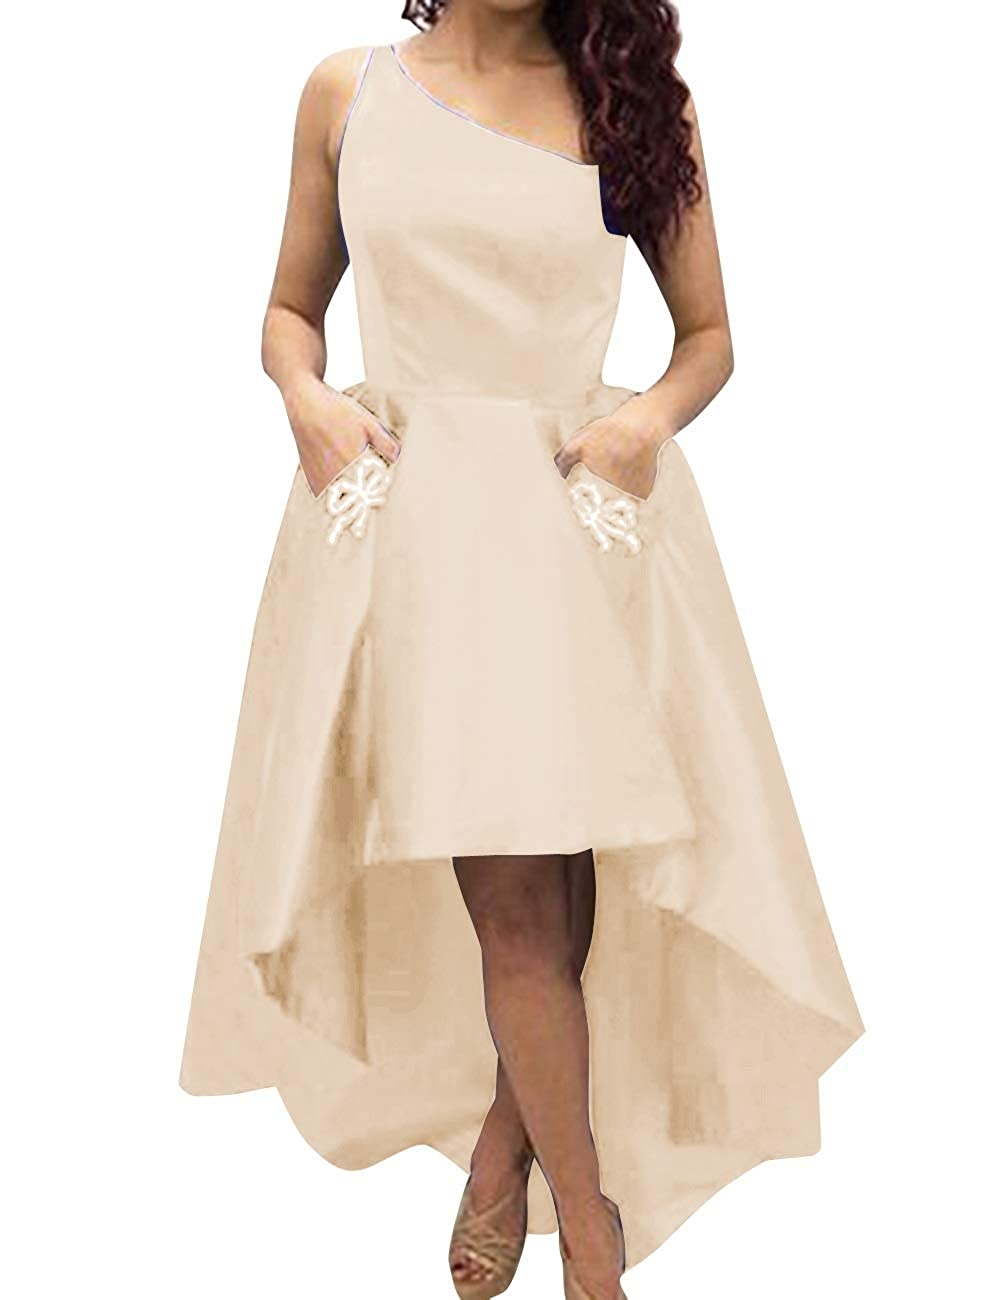 Champagne MorySong Women's One Shoulder High Low Sain Prom Cocktail Dress with Pockets